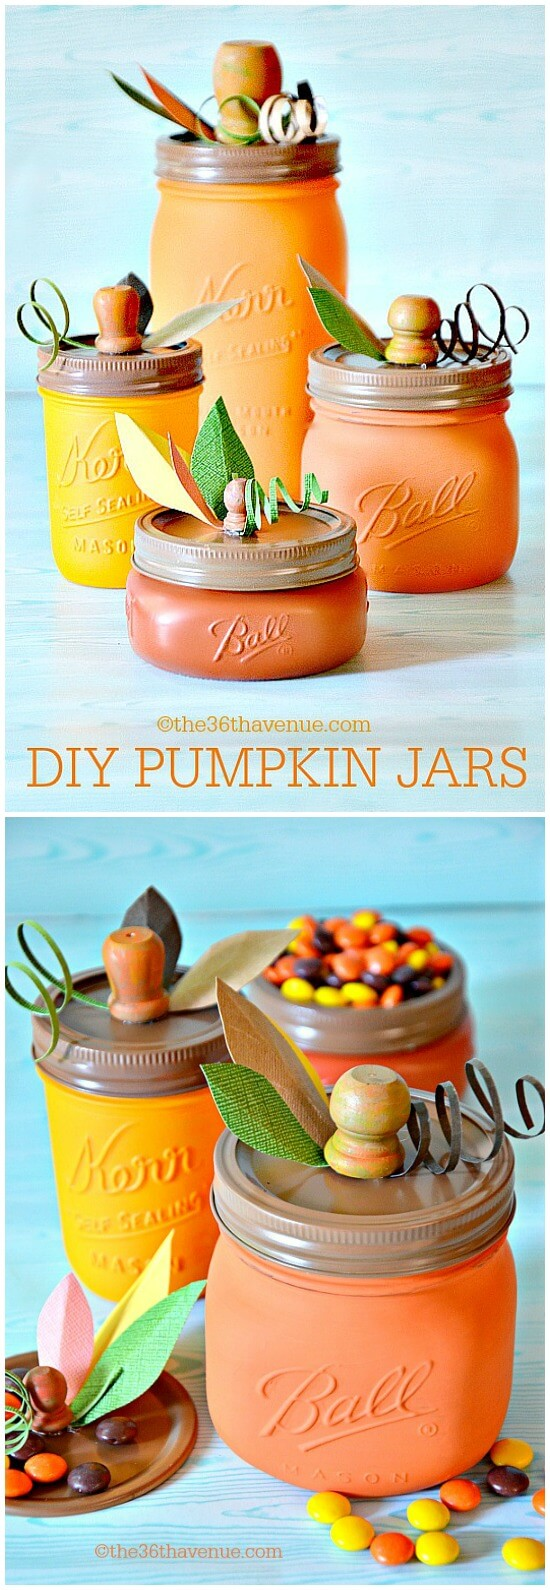 DIY-Pumpkin-Jars-800